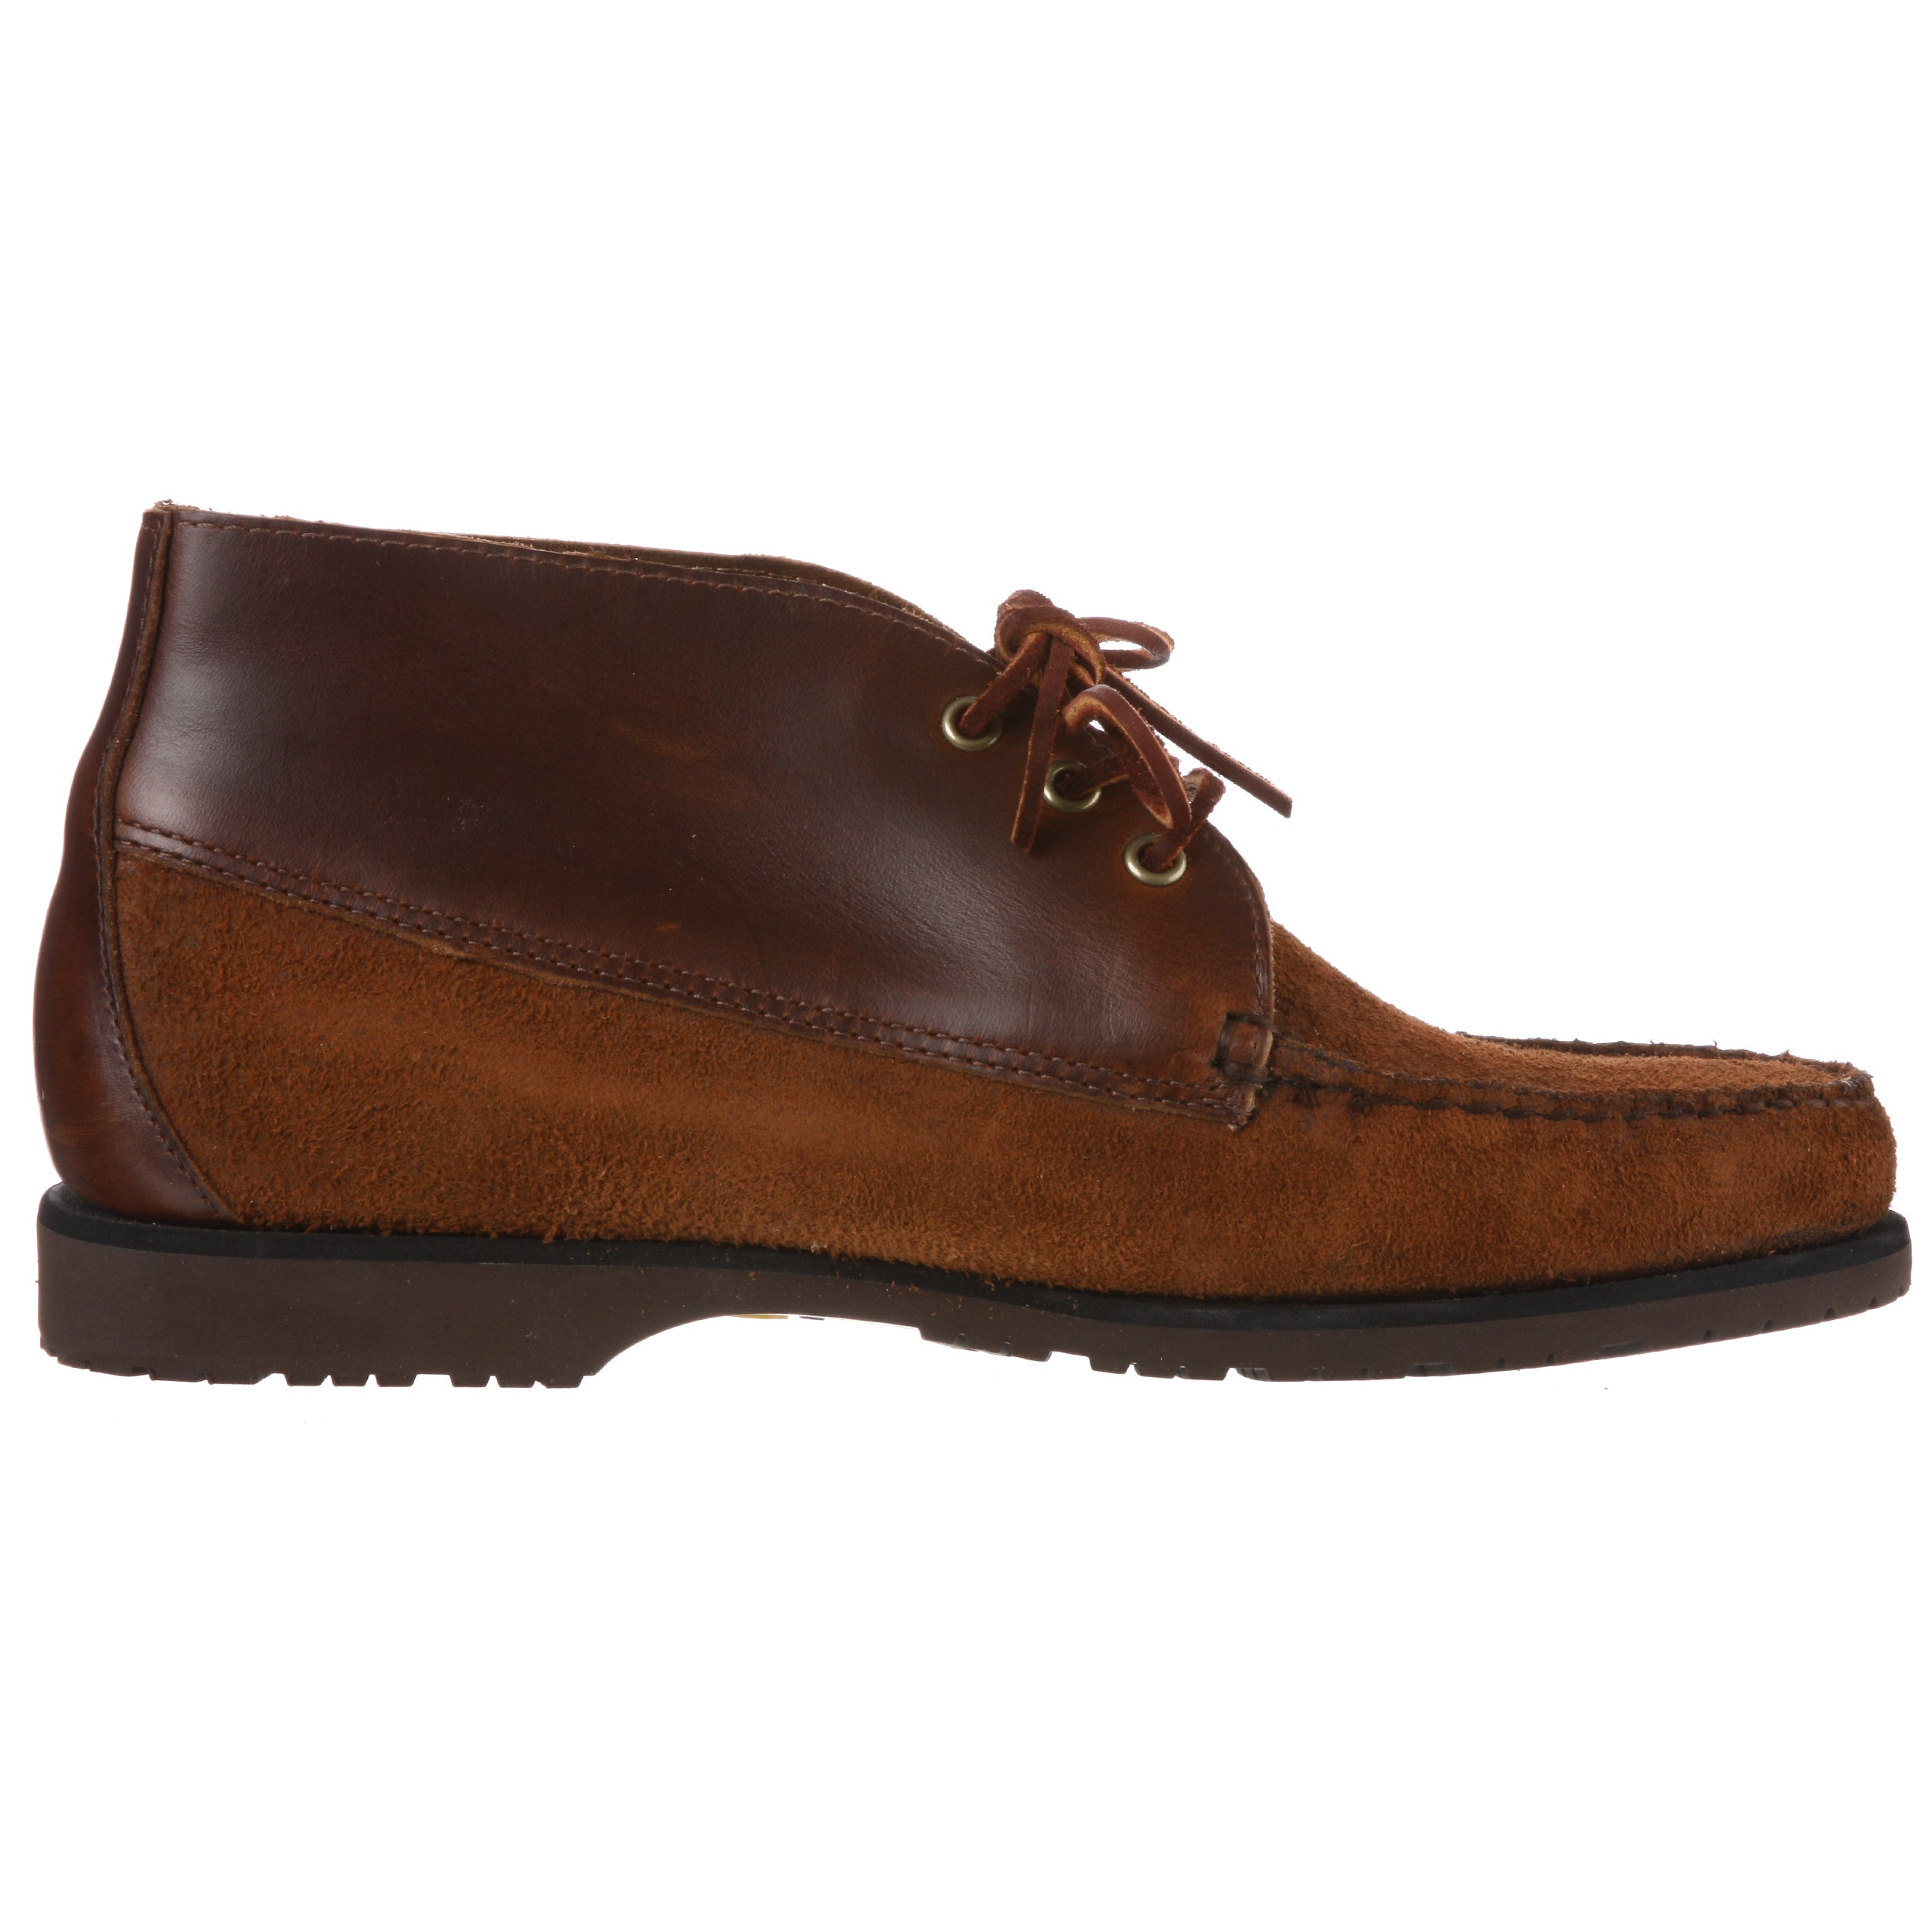 e3eeeb4d2565d Shop Sebago Men's 'Badlands' Cedar Leather Chukka Boots - Free Shipping On  Orders Over $45 - Overstock - 6507492